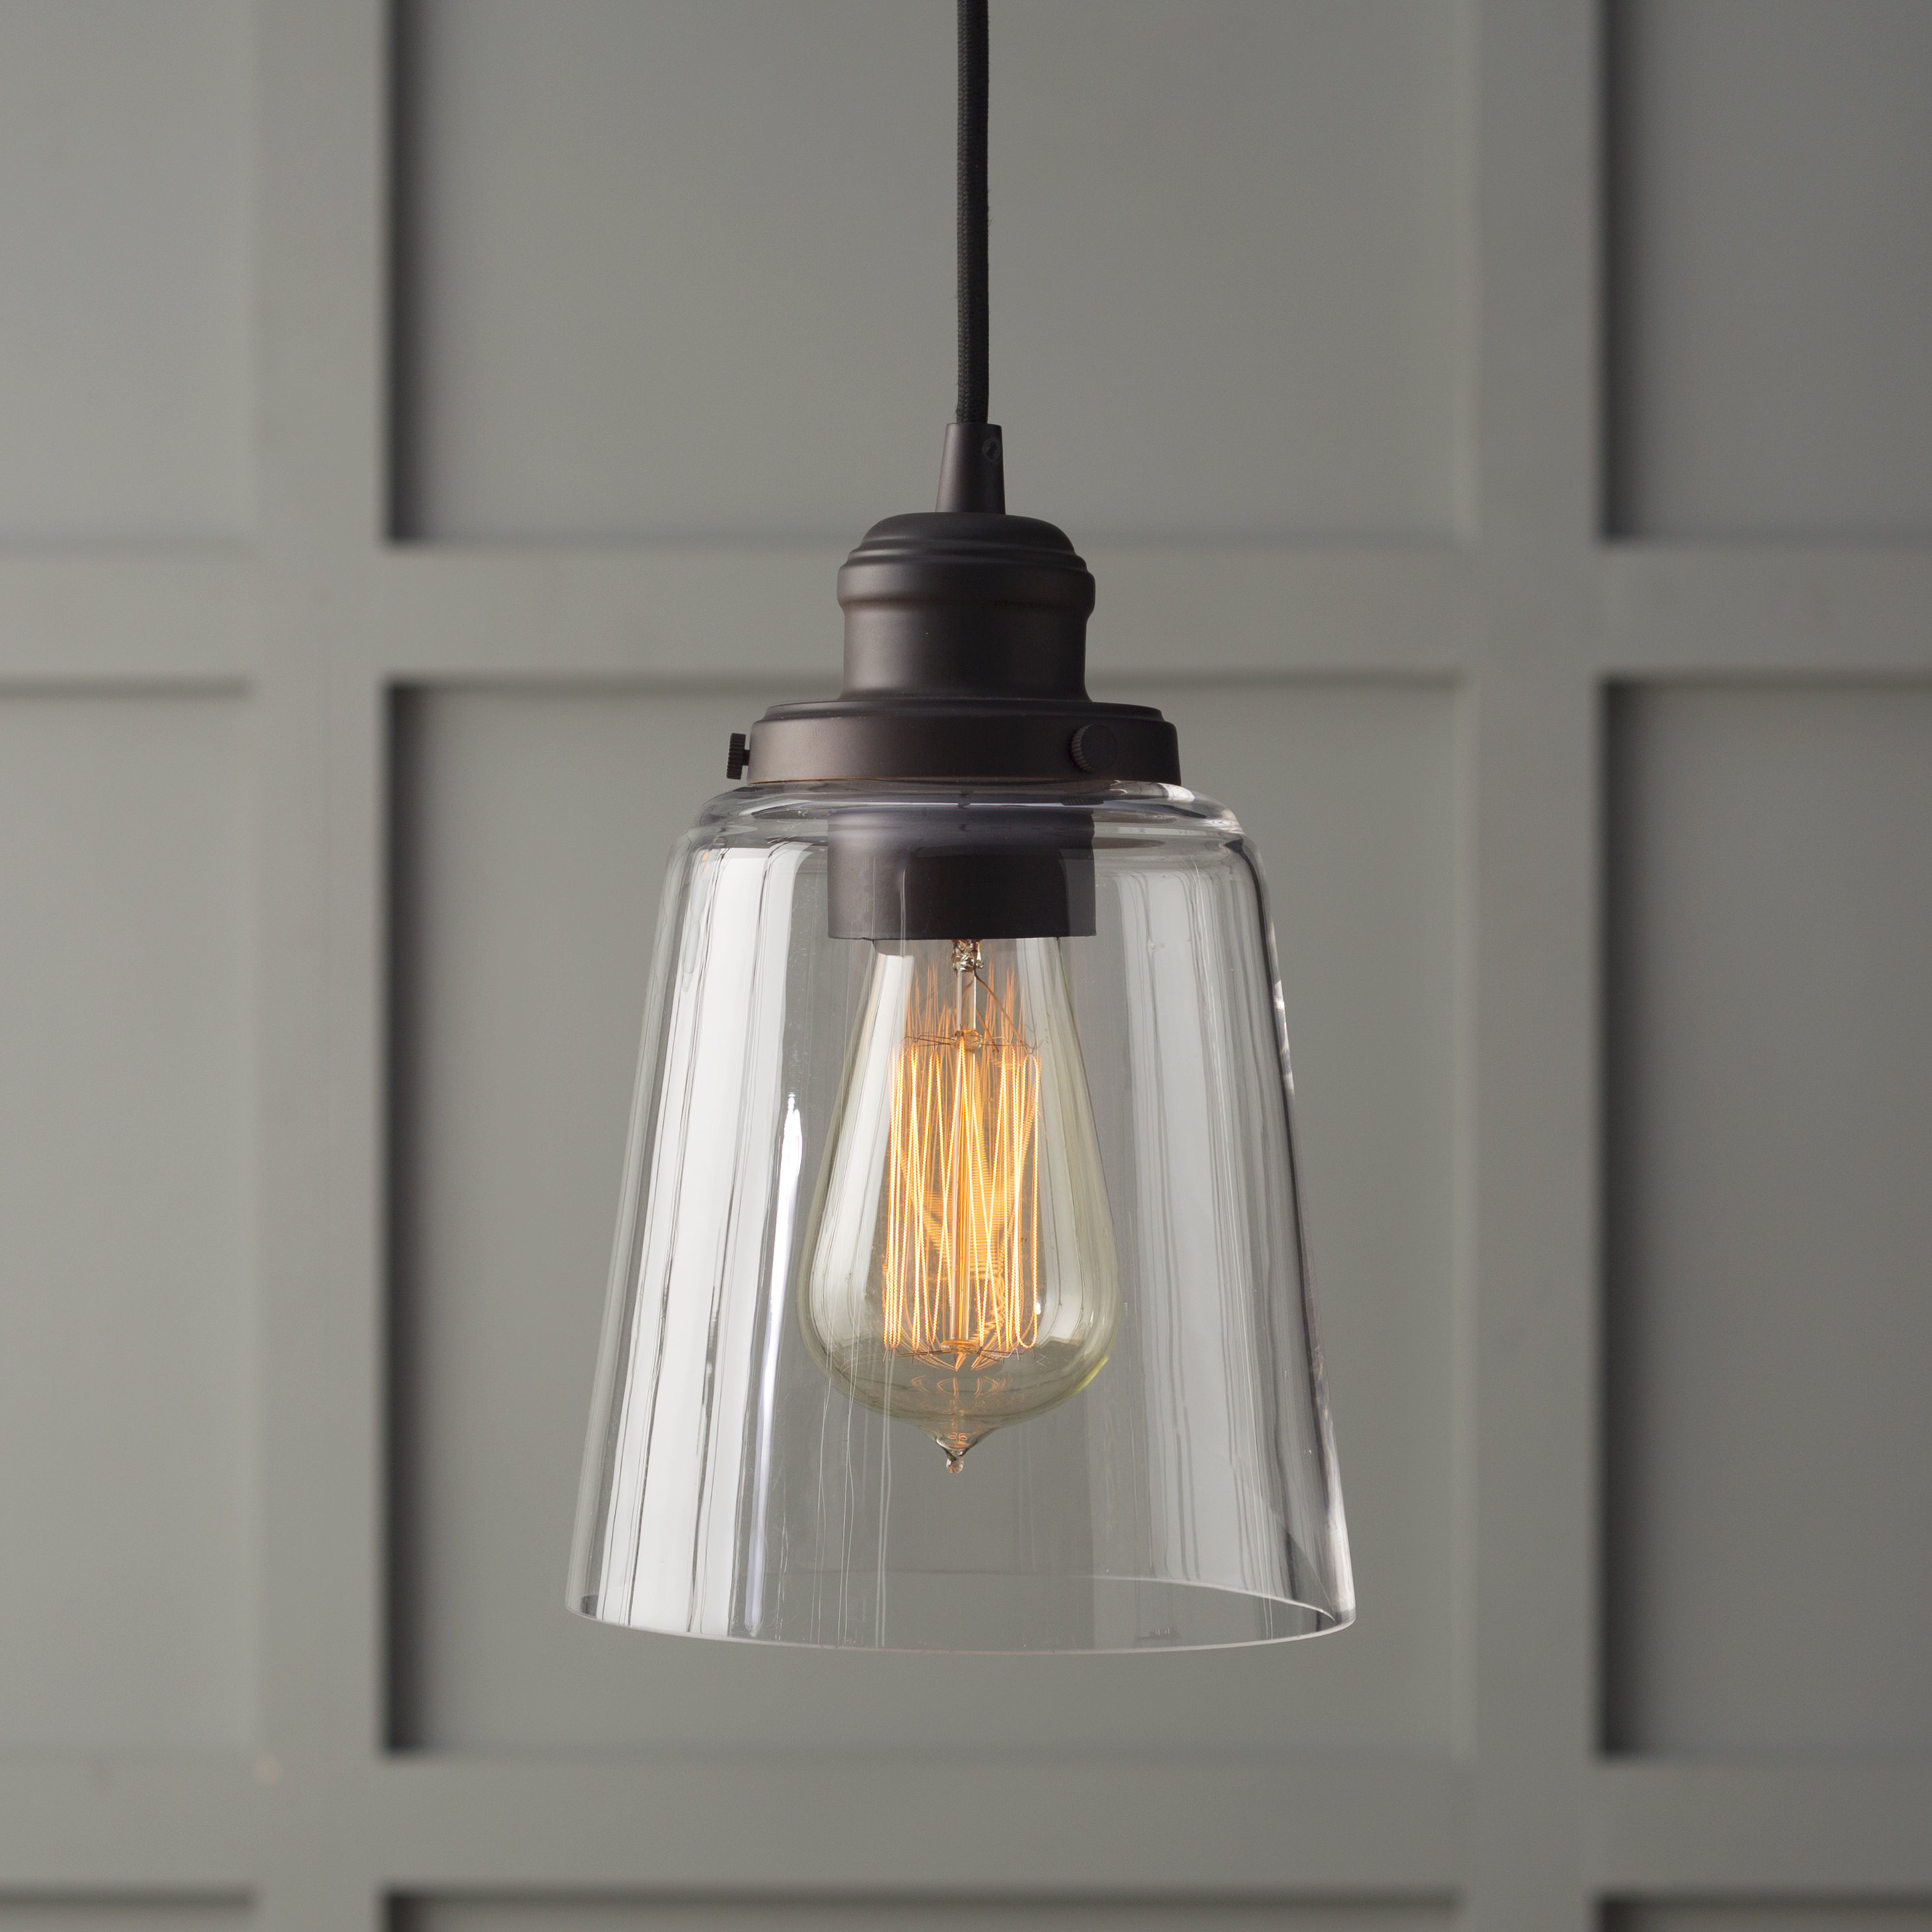 Fashionable Fresno Dome 1 Light Bell Pendants Pertaining To 1 Light Single Bell Pendant (View 10 of 20)